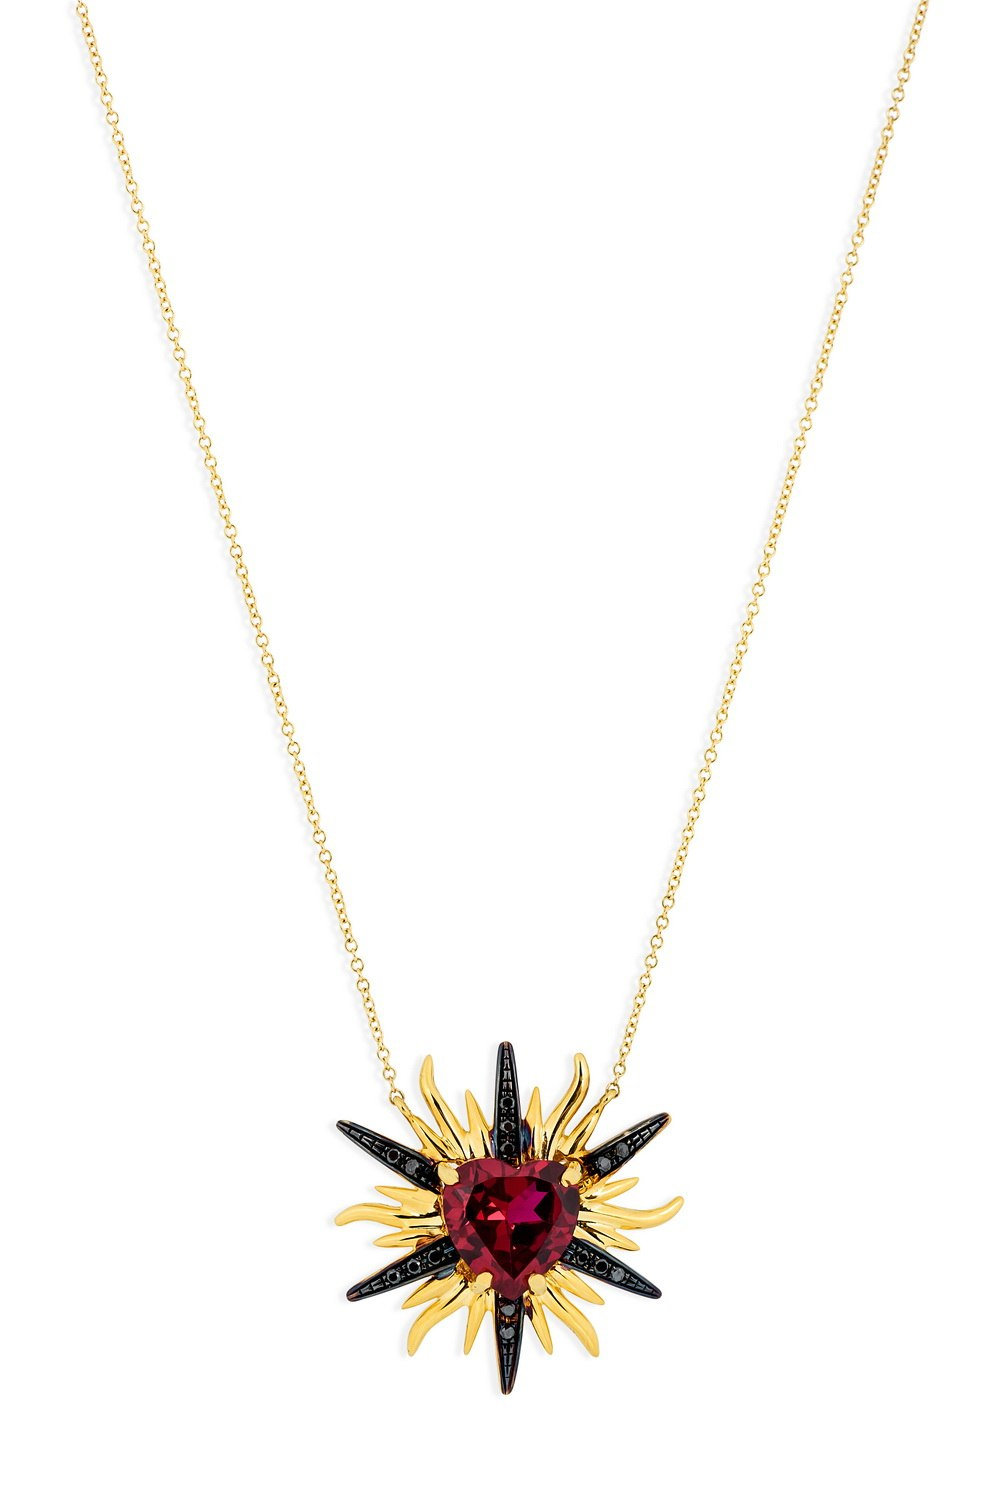 ANASTASIA KESSARIS Red Heart In Yellow Gold Sun With Black Diamonds KOP180100